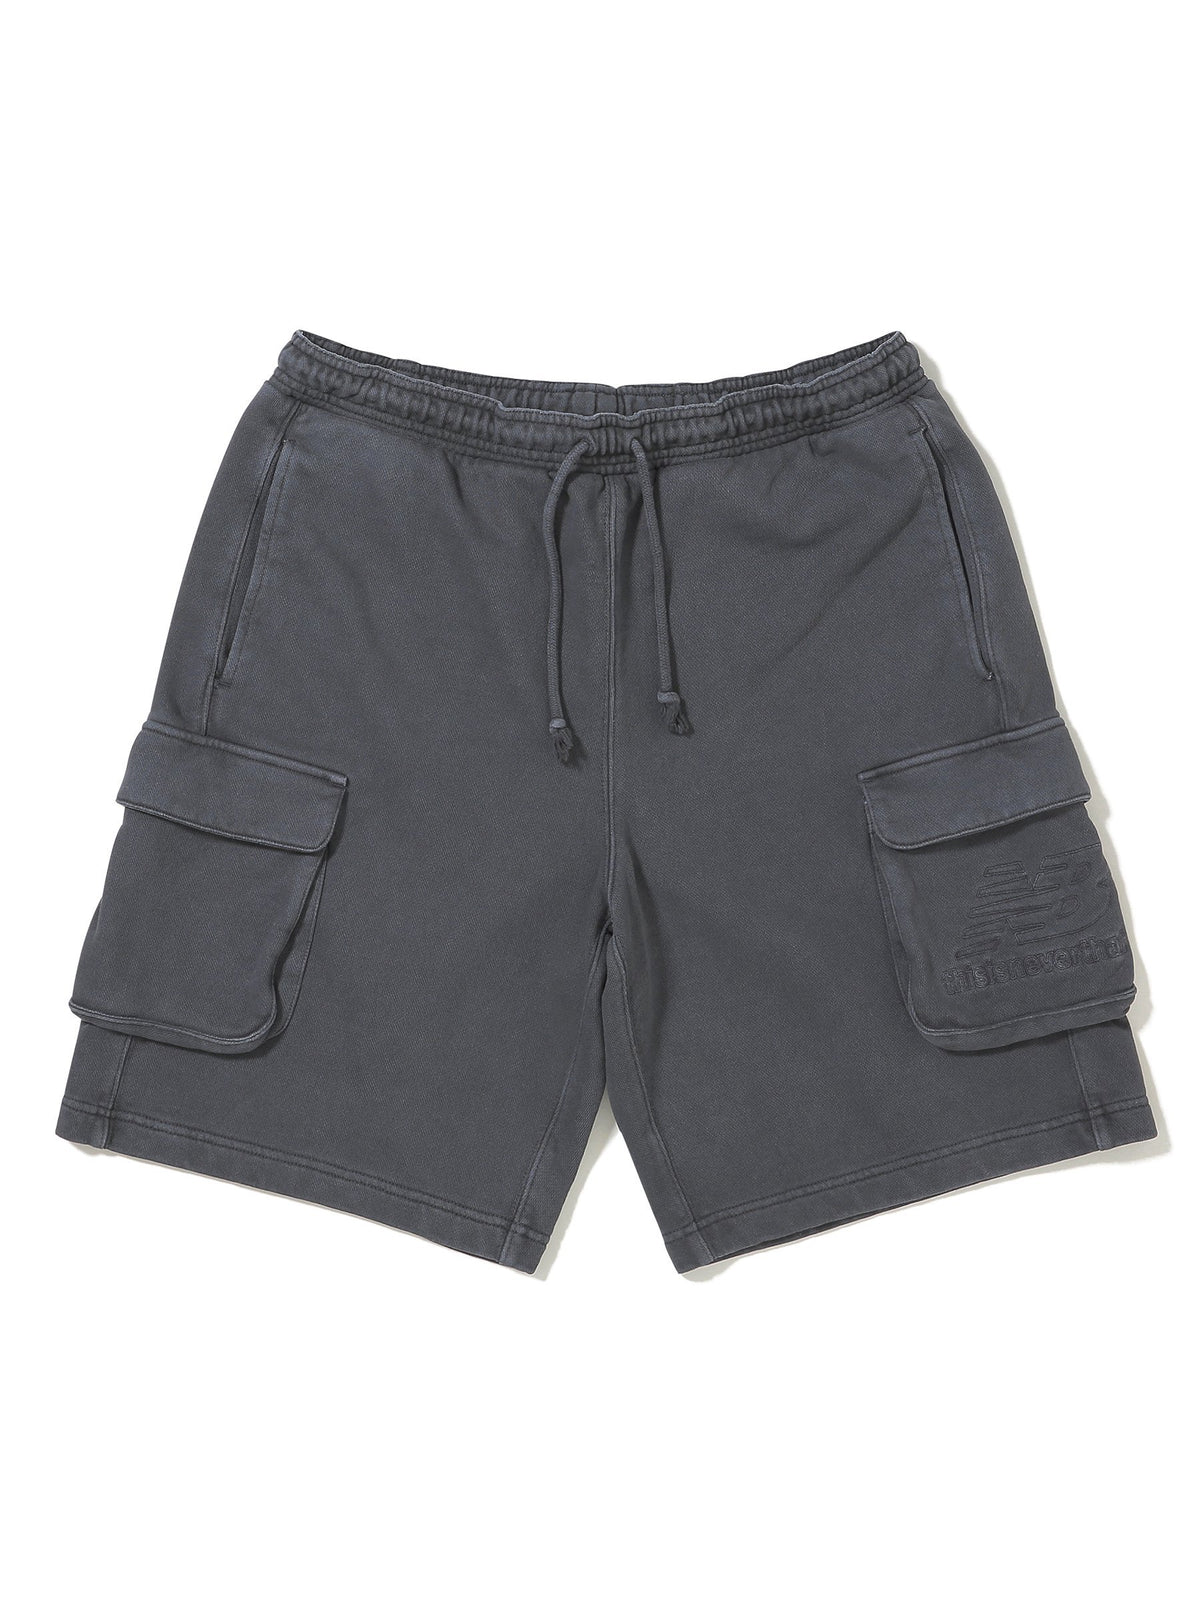 NB TNT SWEAT SHORTS - thisisneverthat